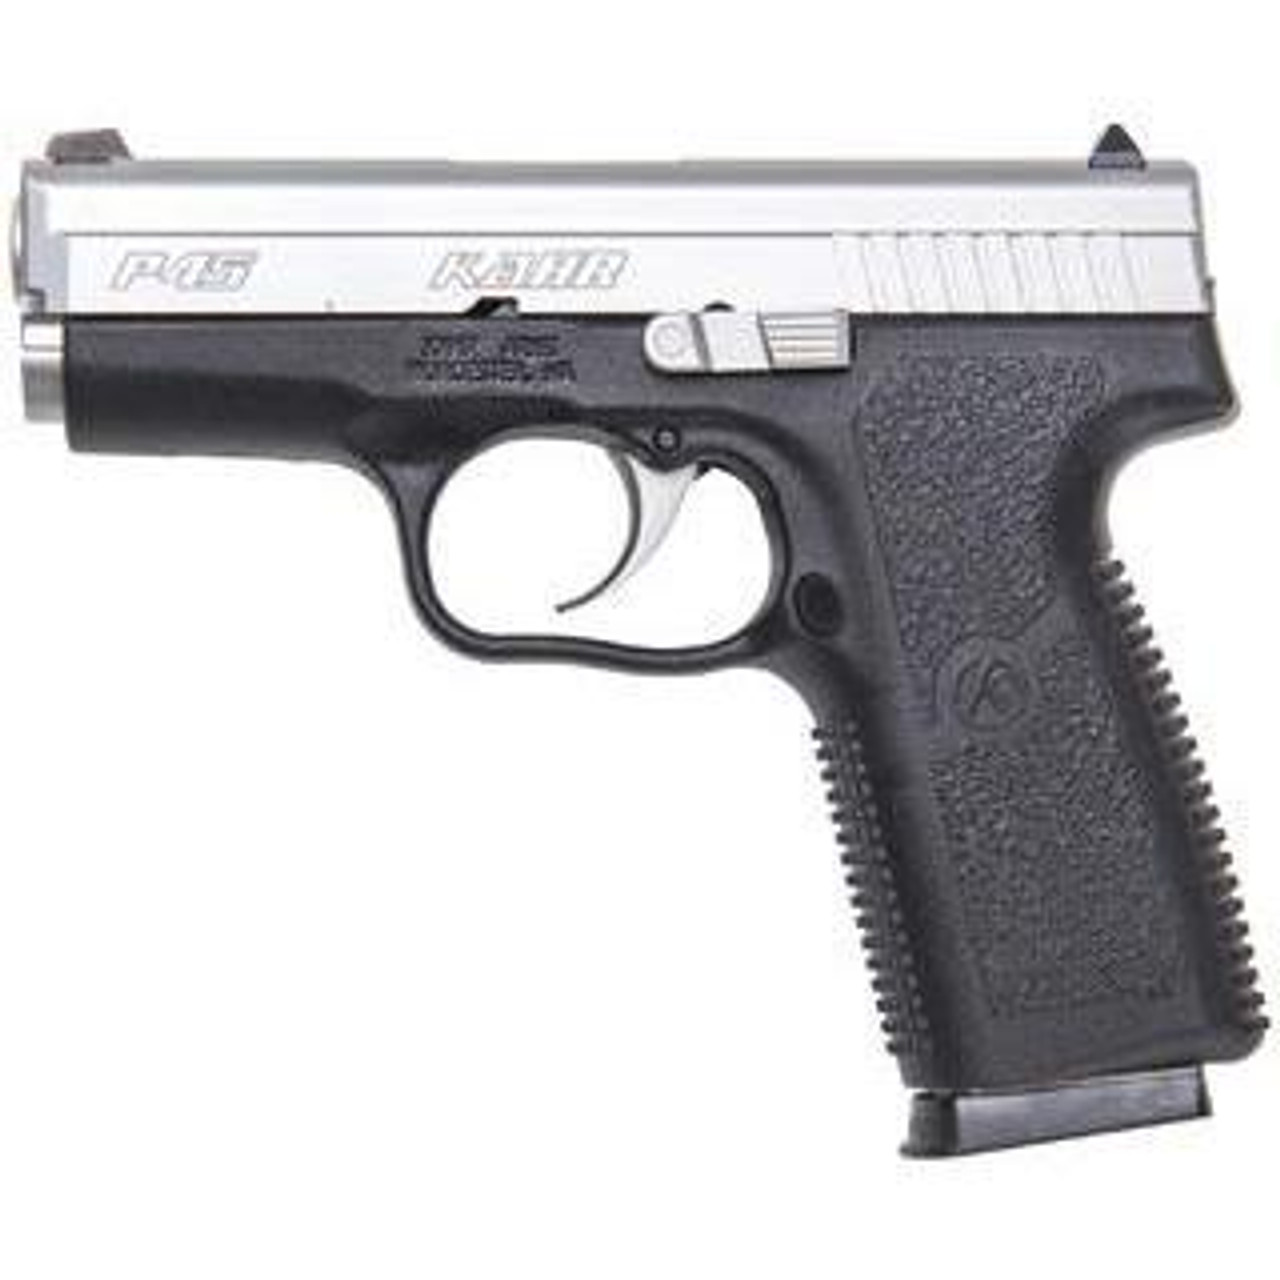 KAHR P45 CALIFORNIA LEGAL - .45ACP